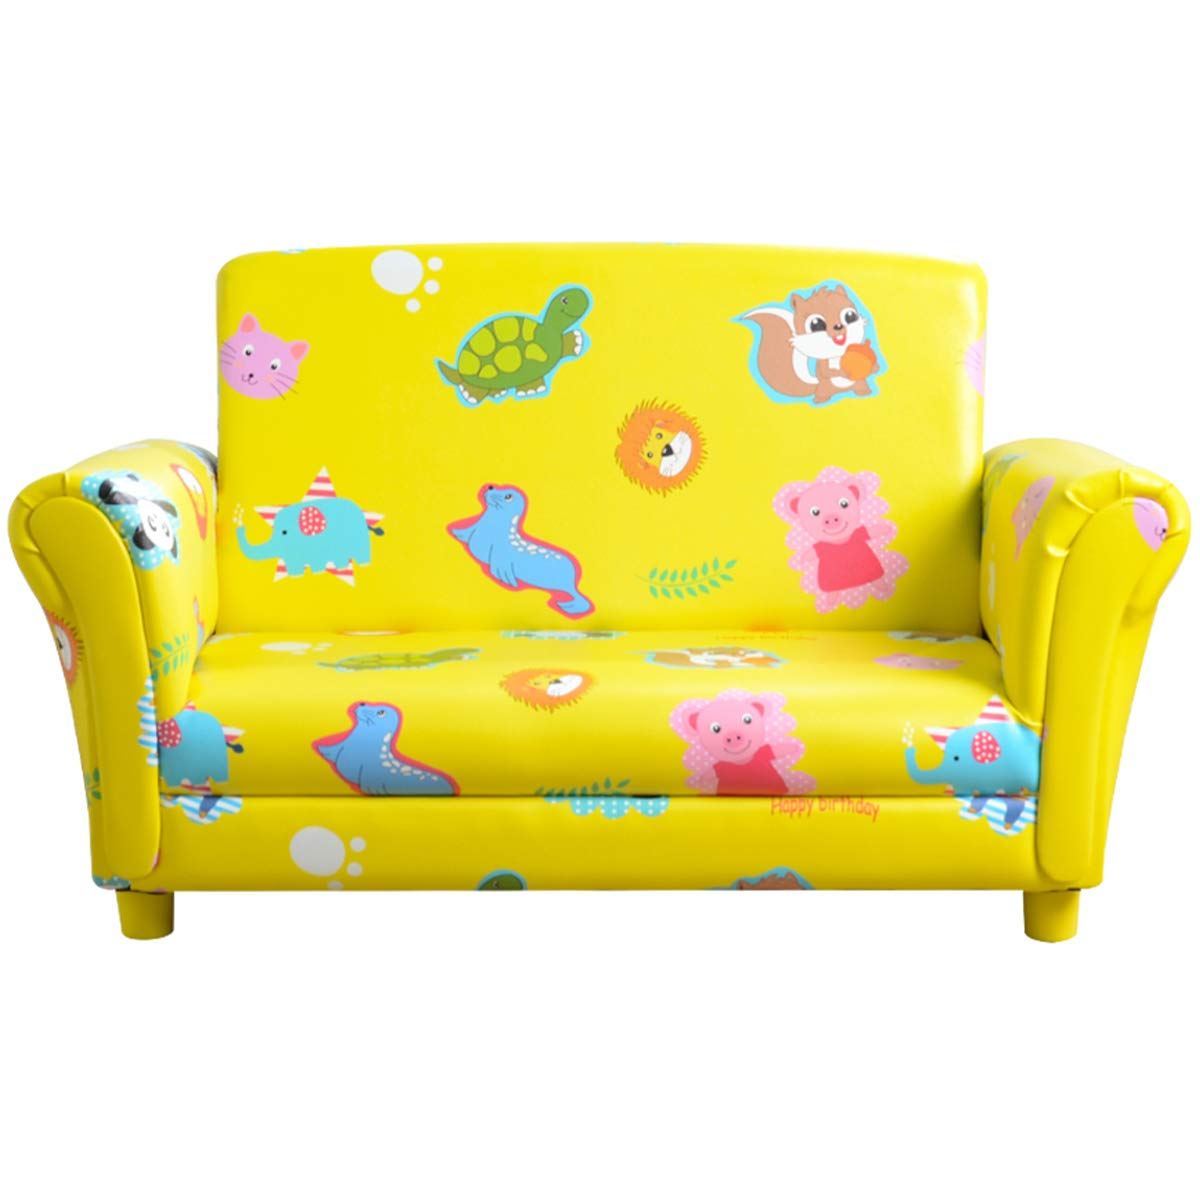 Classical Kids Upholstered Chair and Kids loveseat Sofa and Kids couches and Sofas, with Wooden Frame,Soft Foam and ECO-Friendly PVC Made,for Children and Toddlers Room(Yellow)